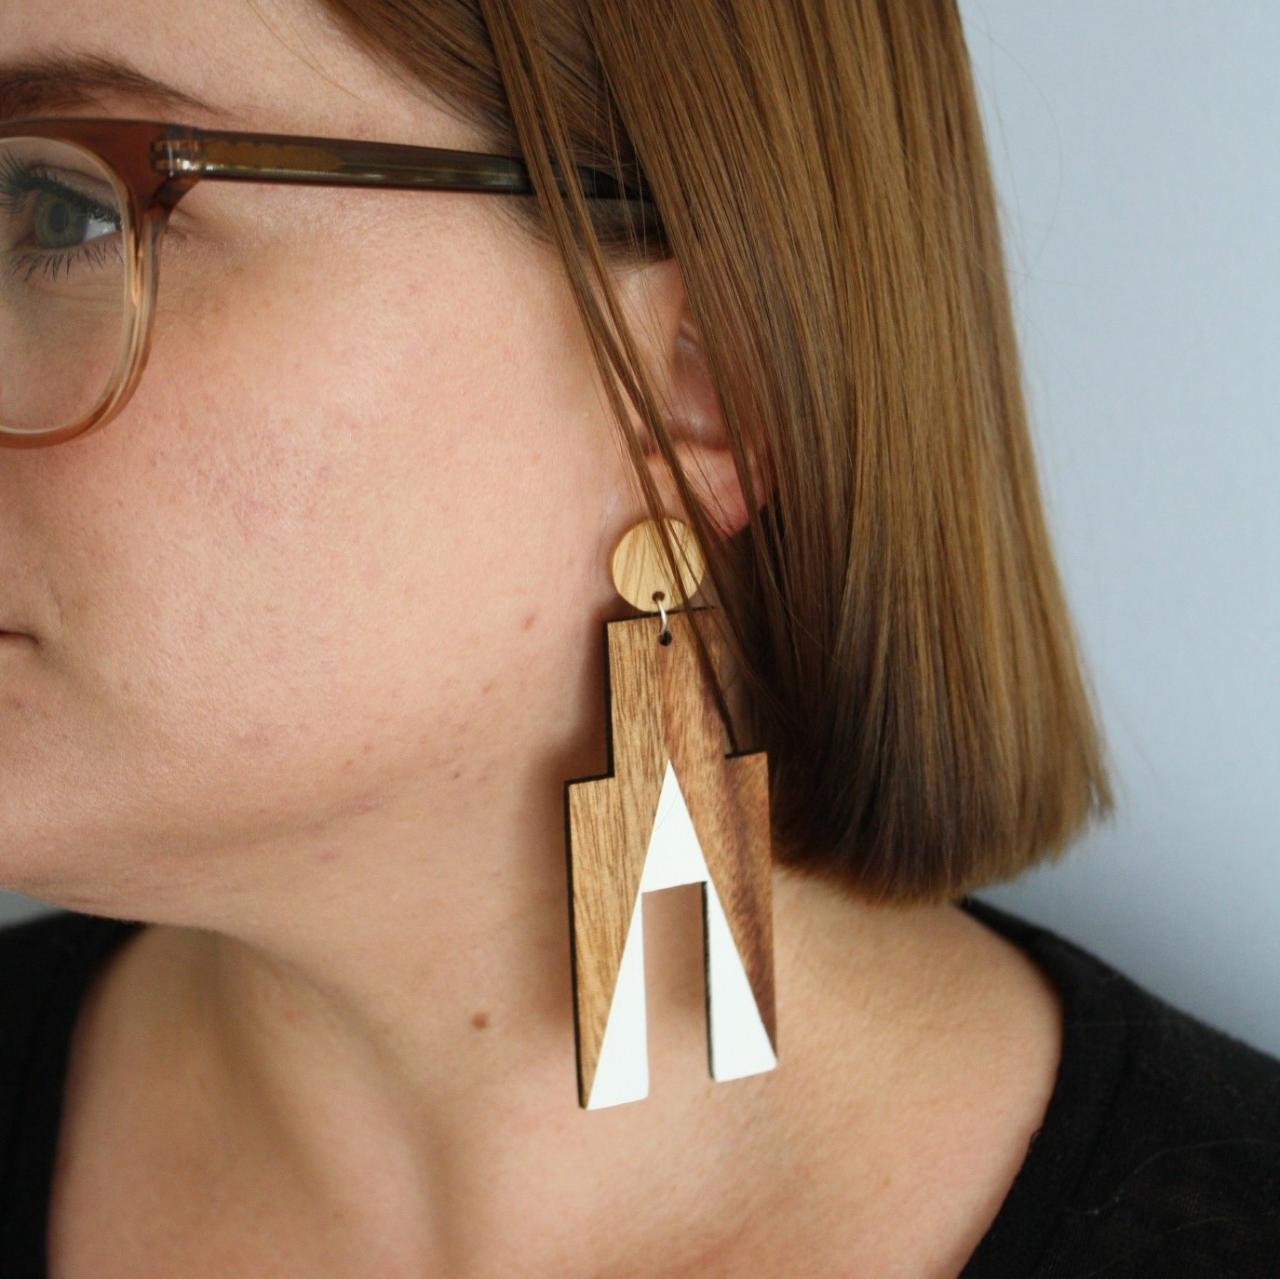 BNE Design: Earring workshop with Kirralee and Co